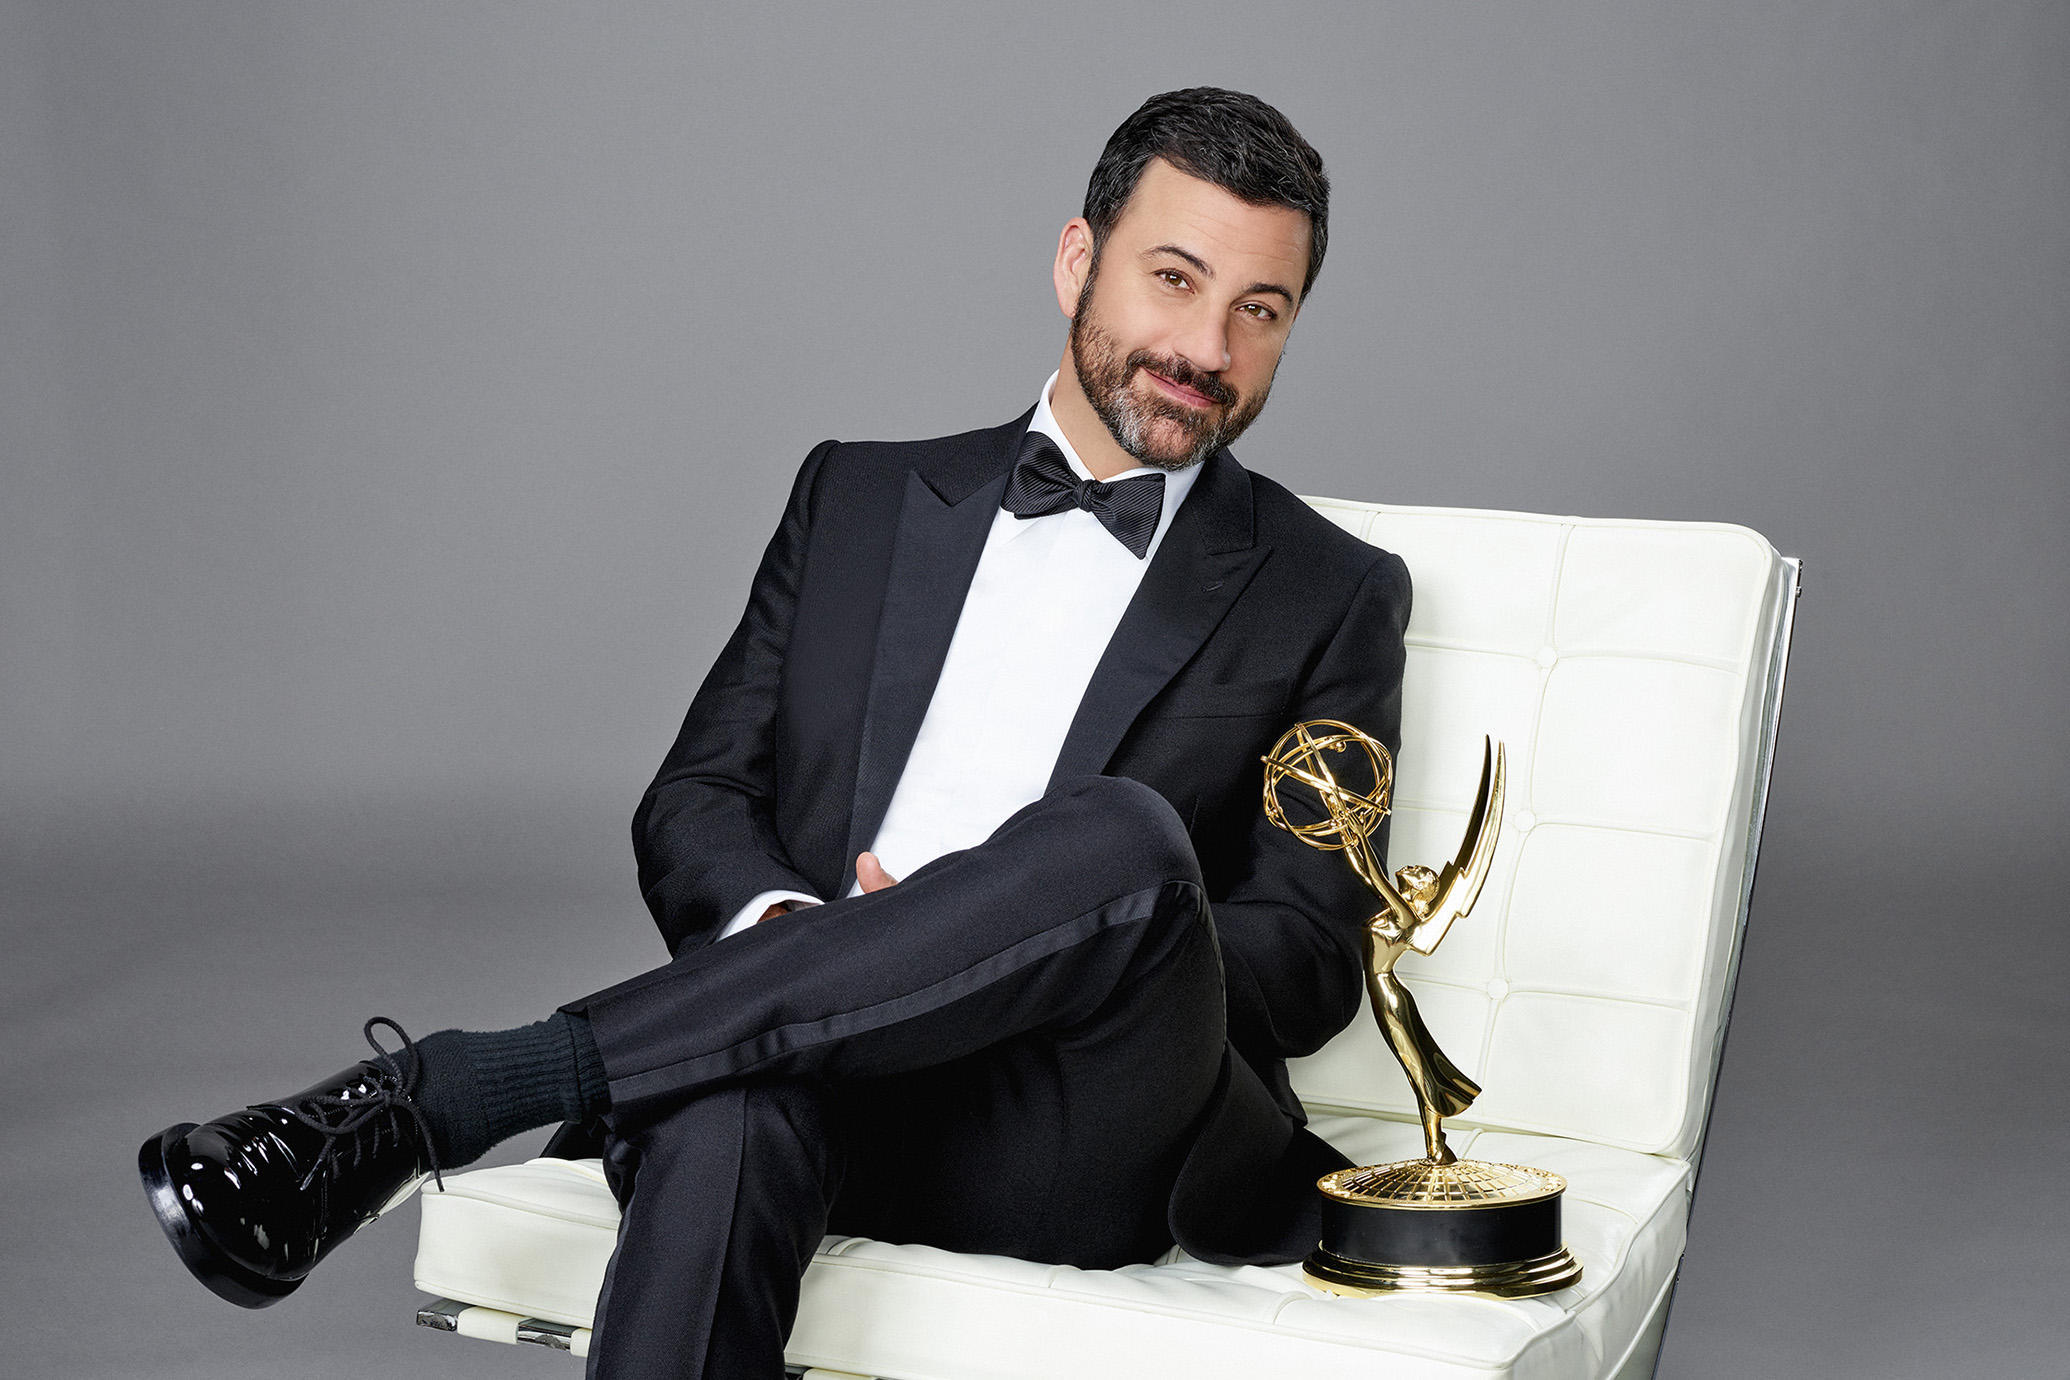 Jimmy Kimmel Wallpapers Images Photos Pictures Backgrounds 2070x1380